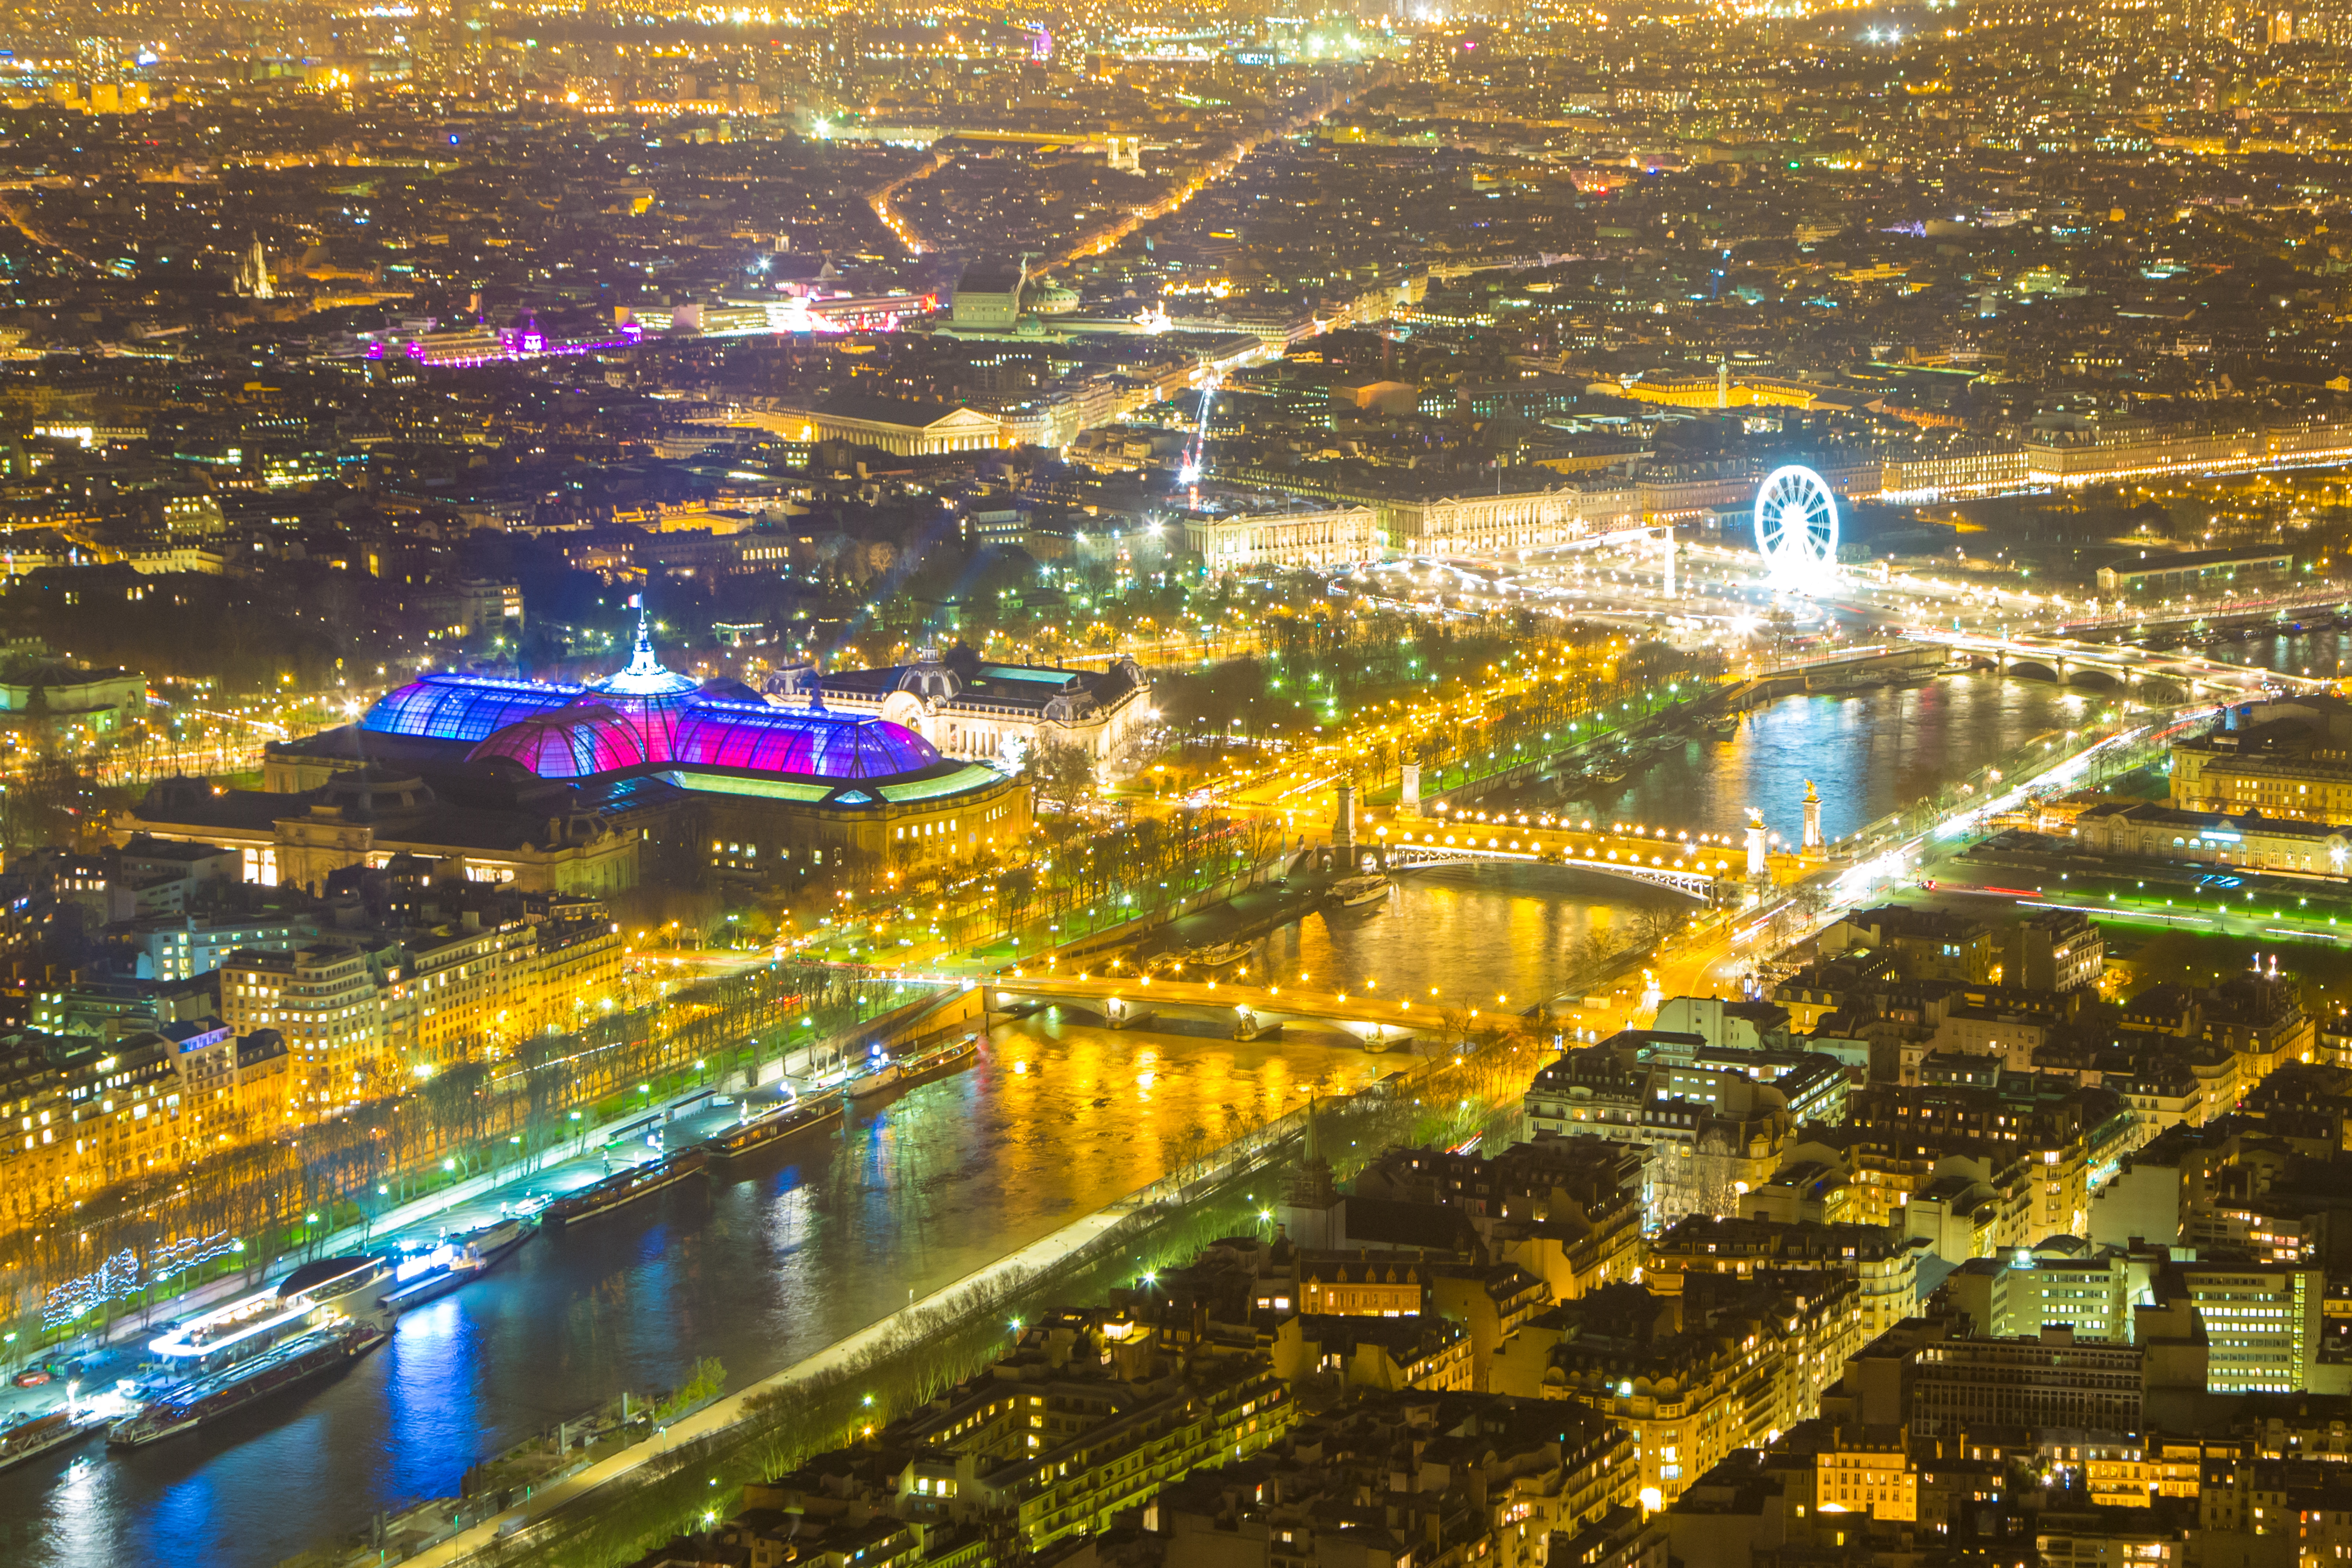 4K 5K wallpaper Paris night viewTest for new Retina iMac 6400x4267